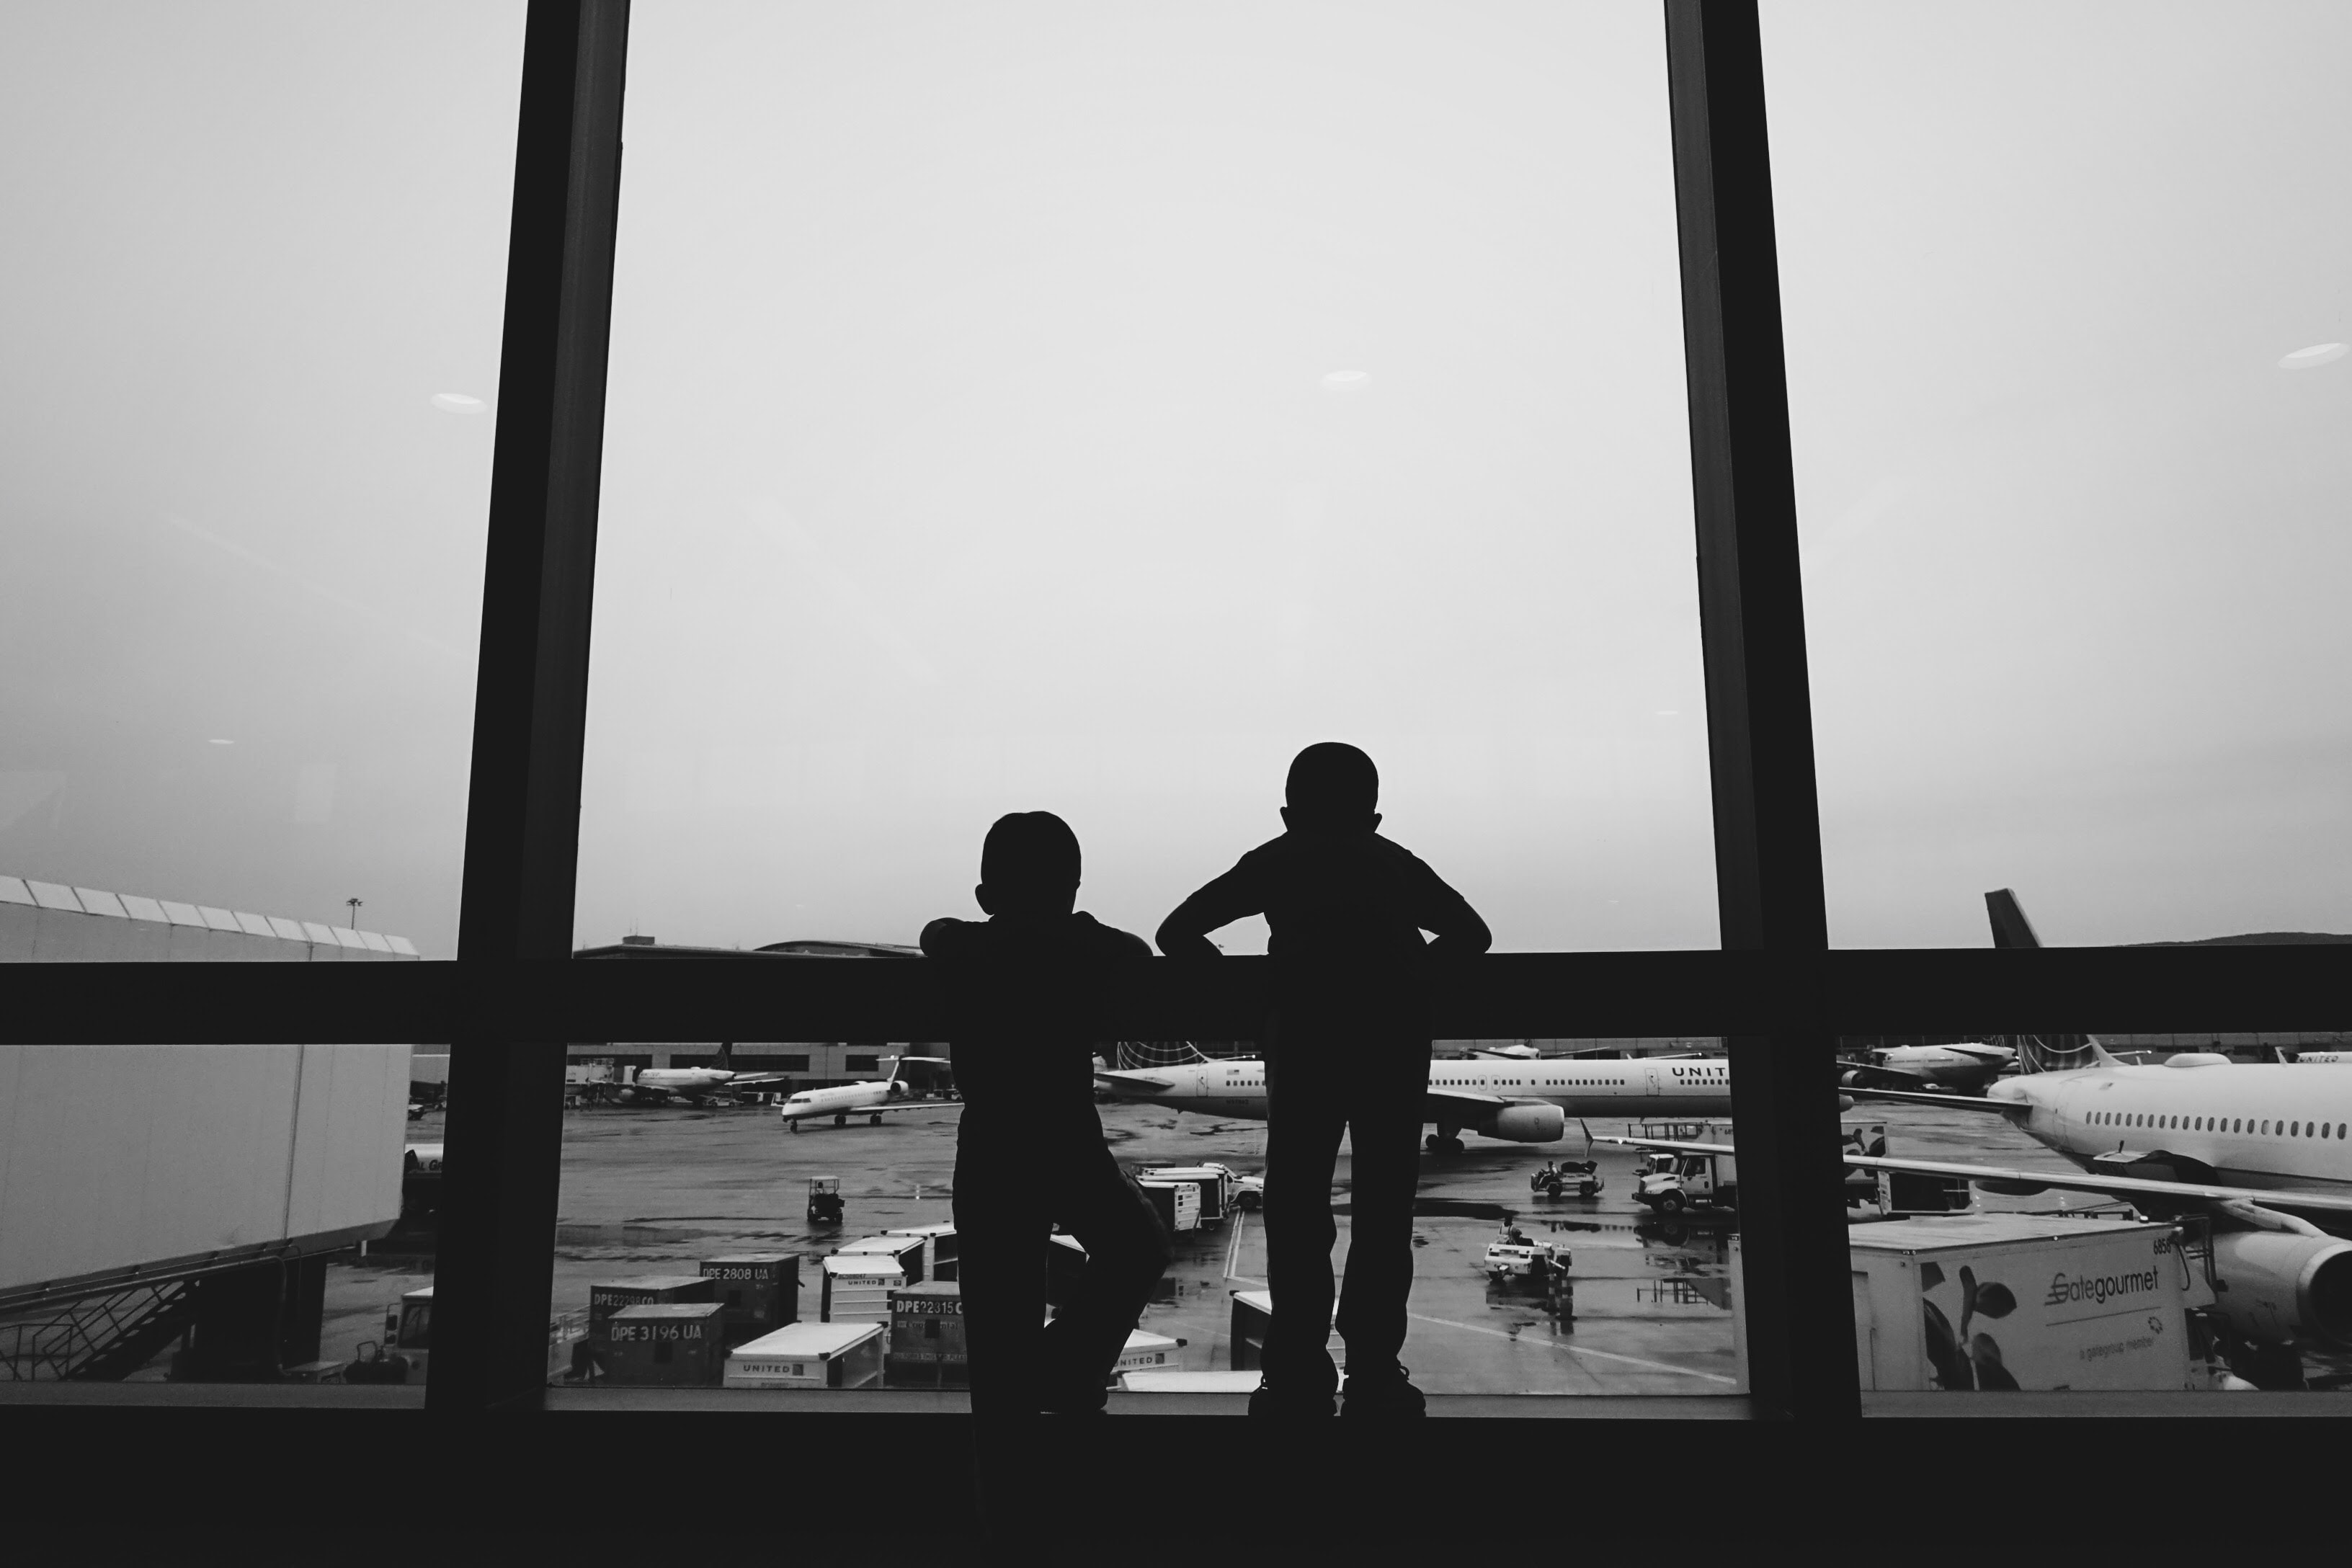 Free Unsplash photo from Del Anicete